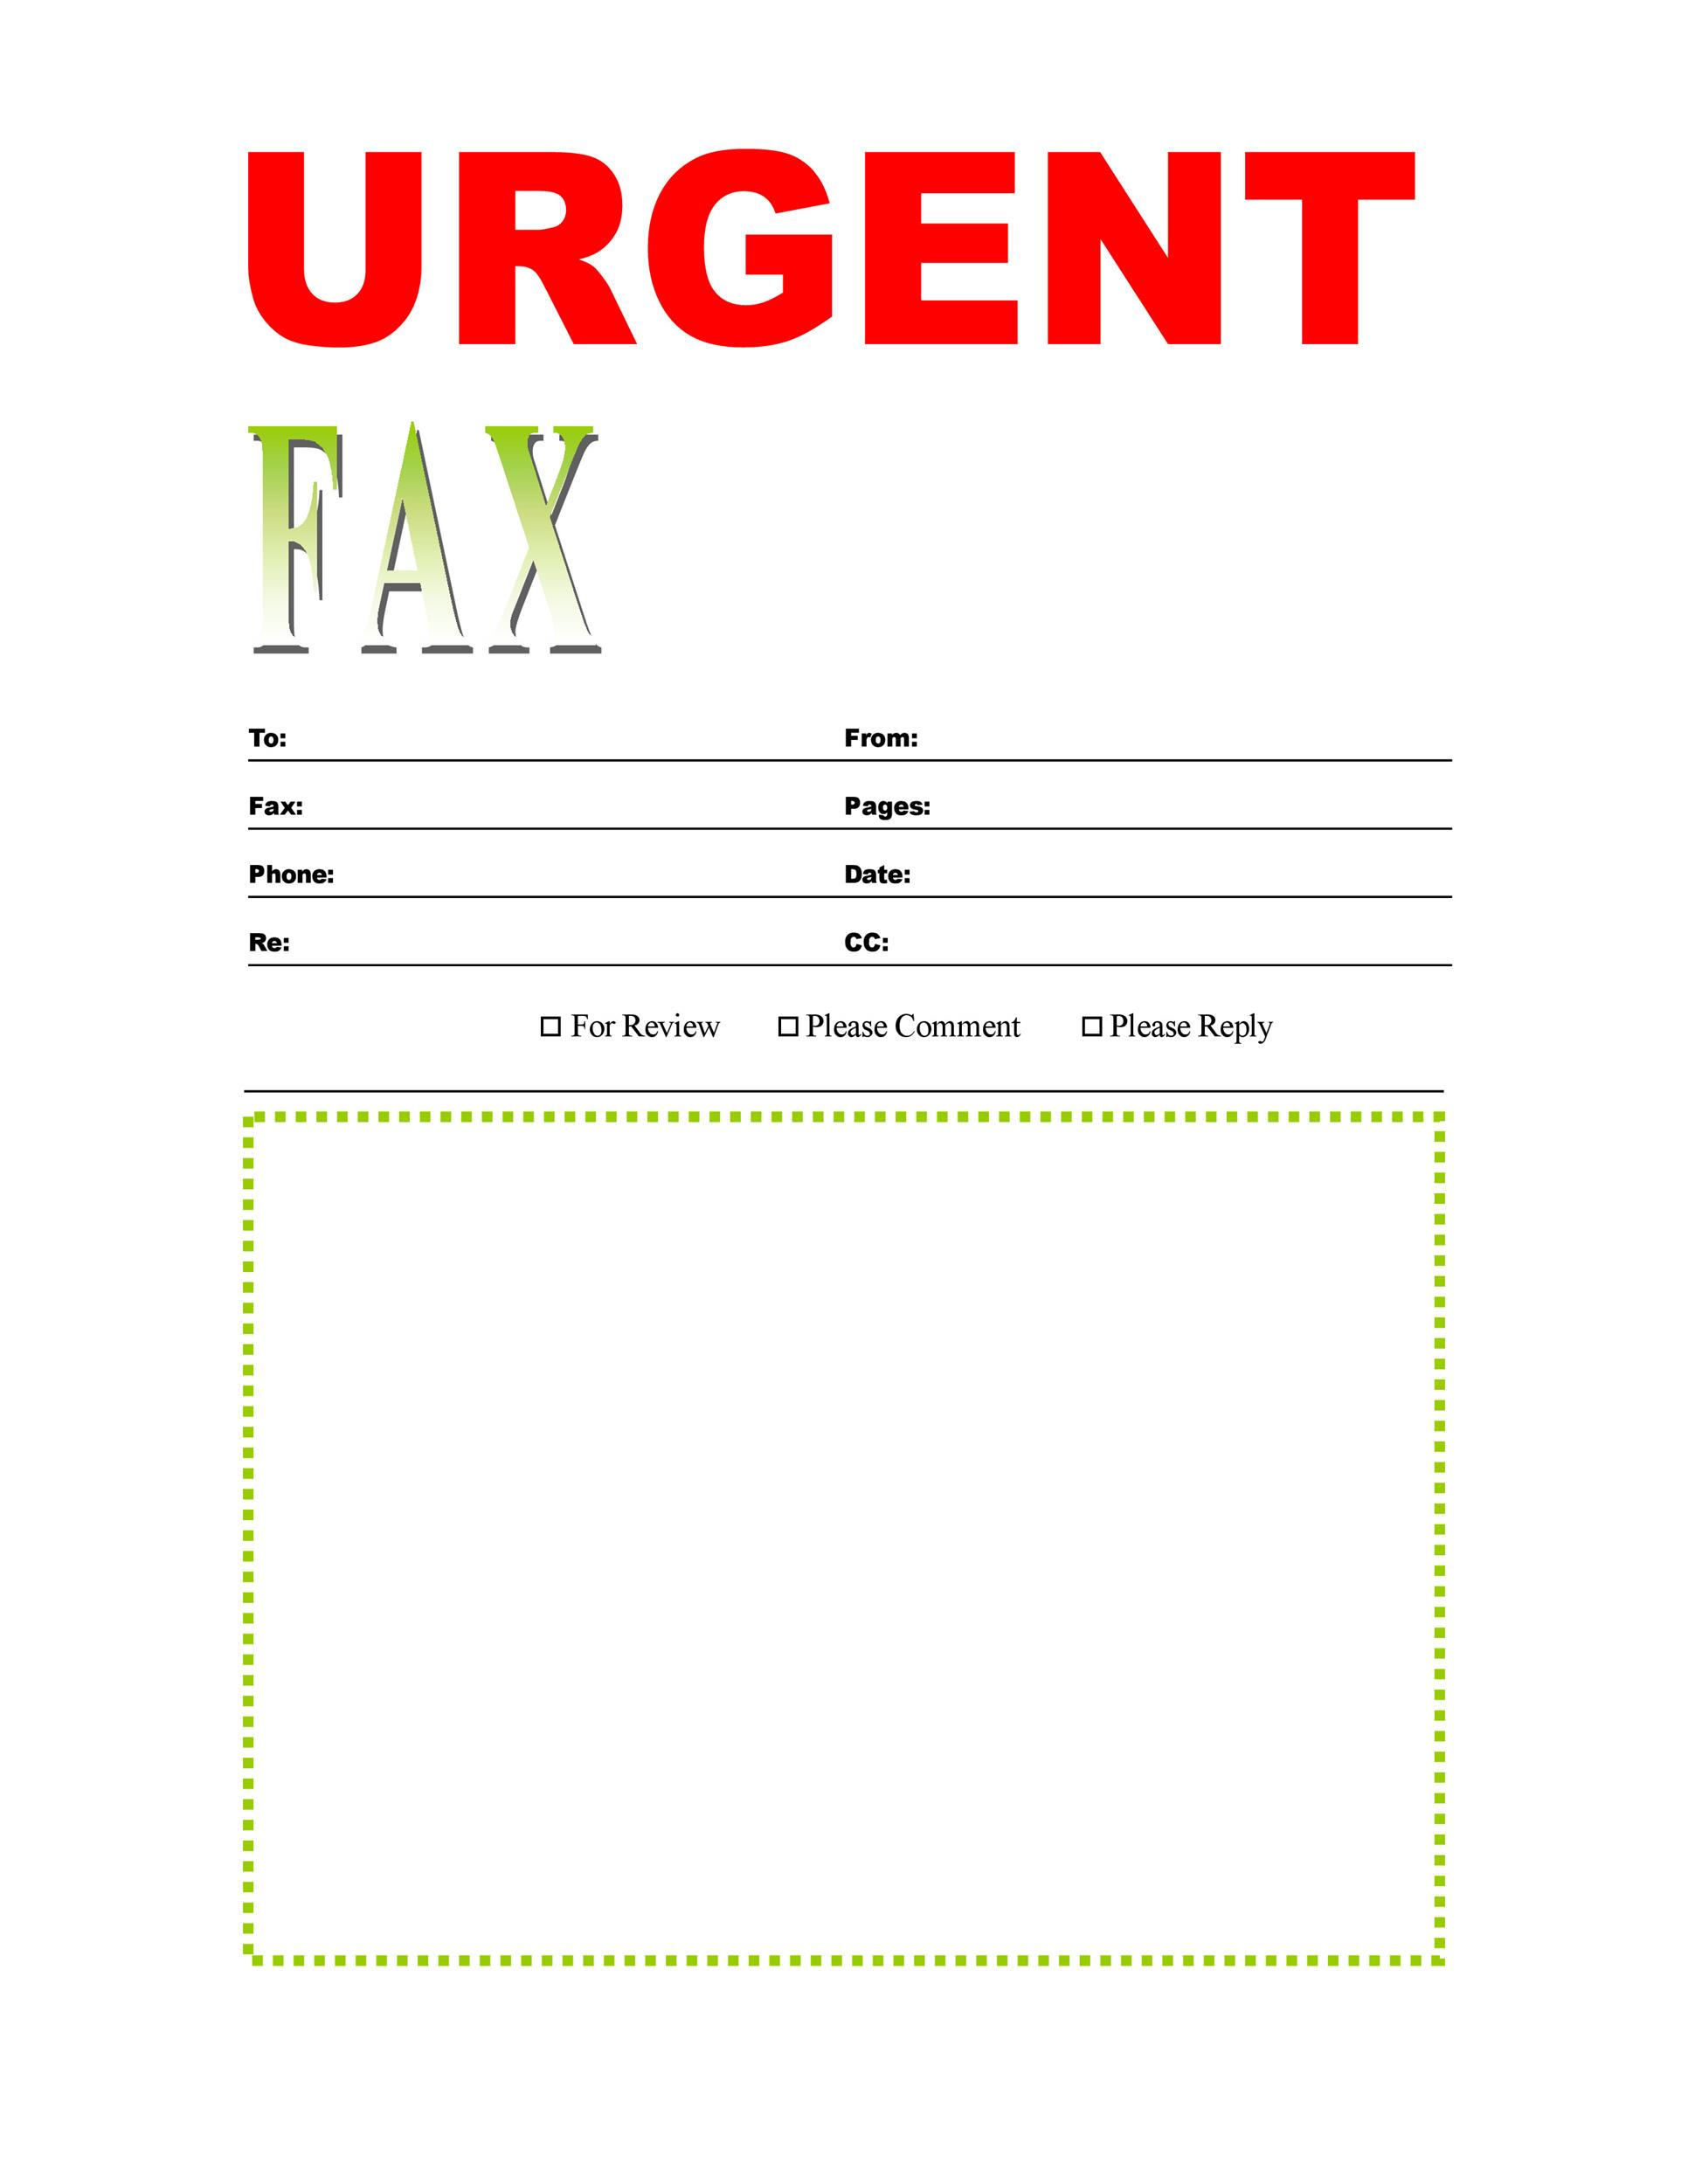 Free Fax Cover Sheet Template 08